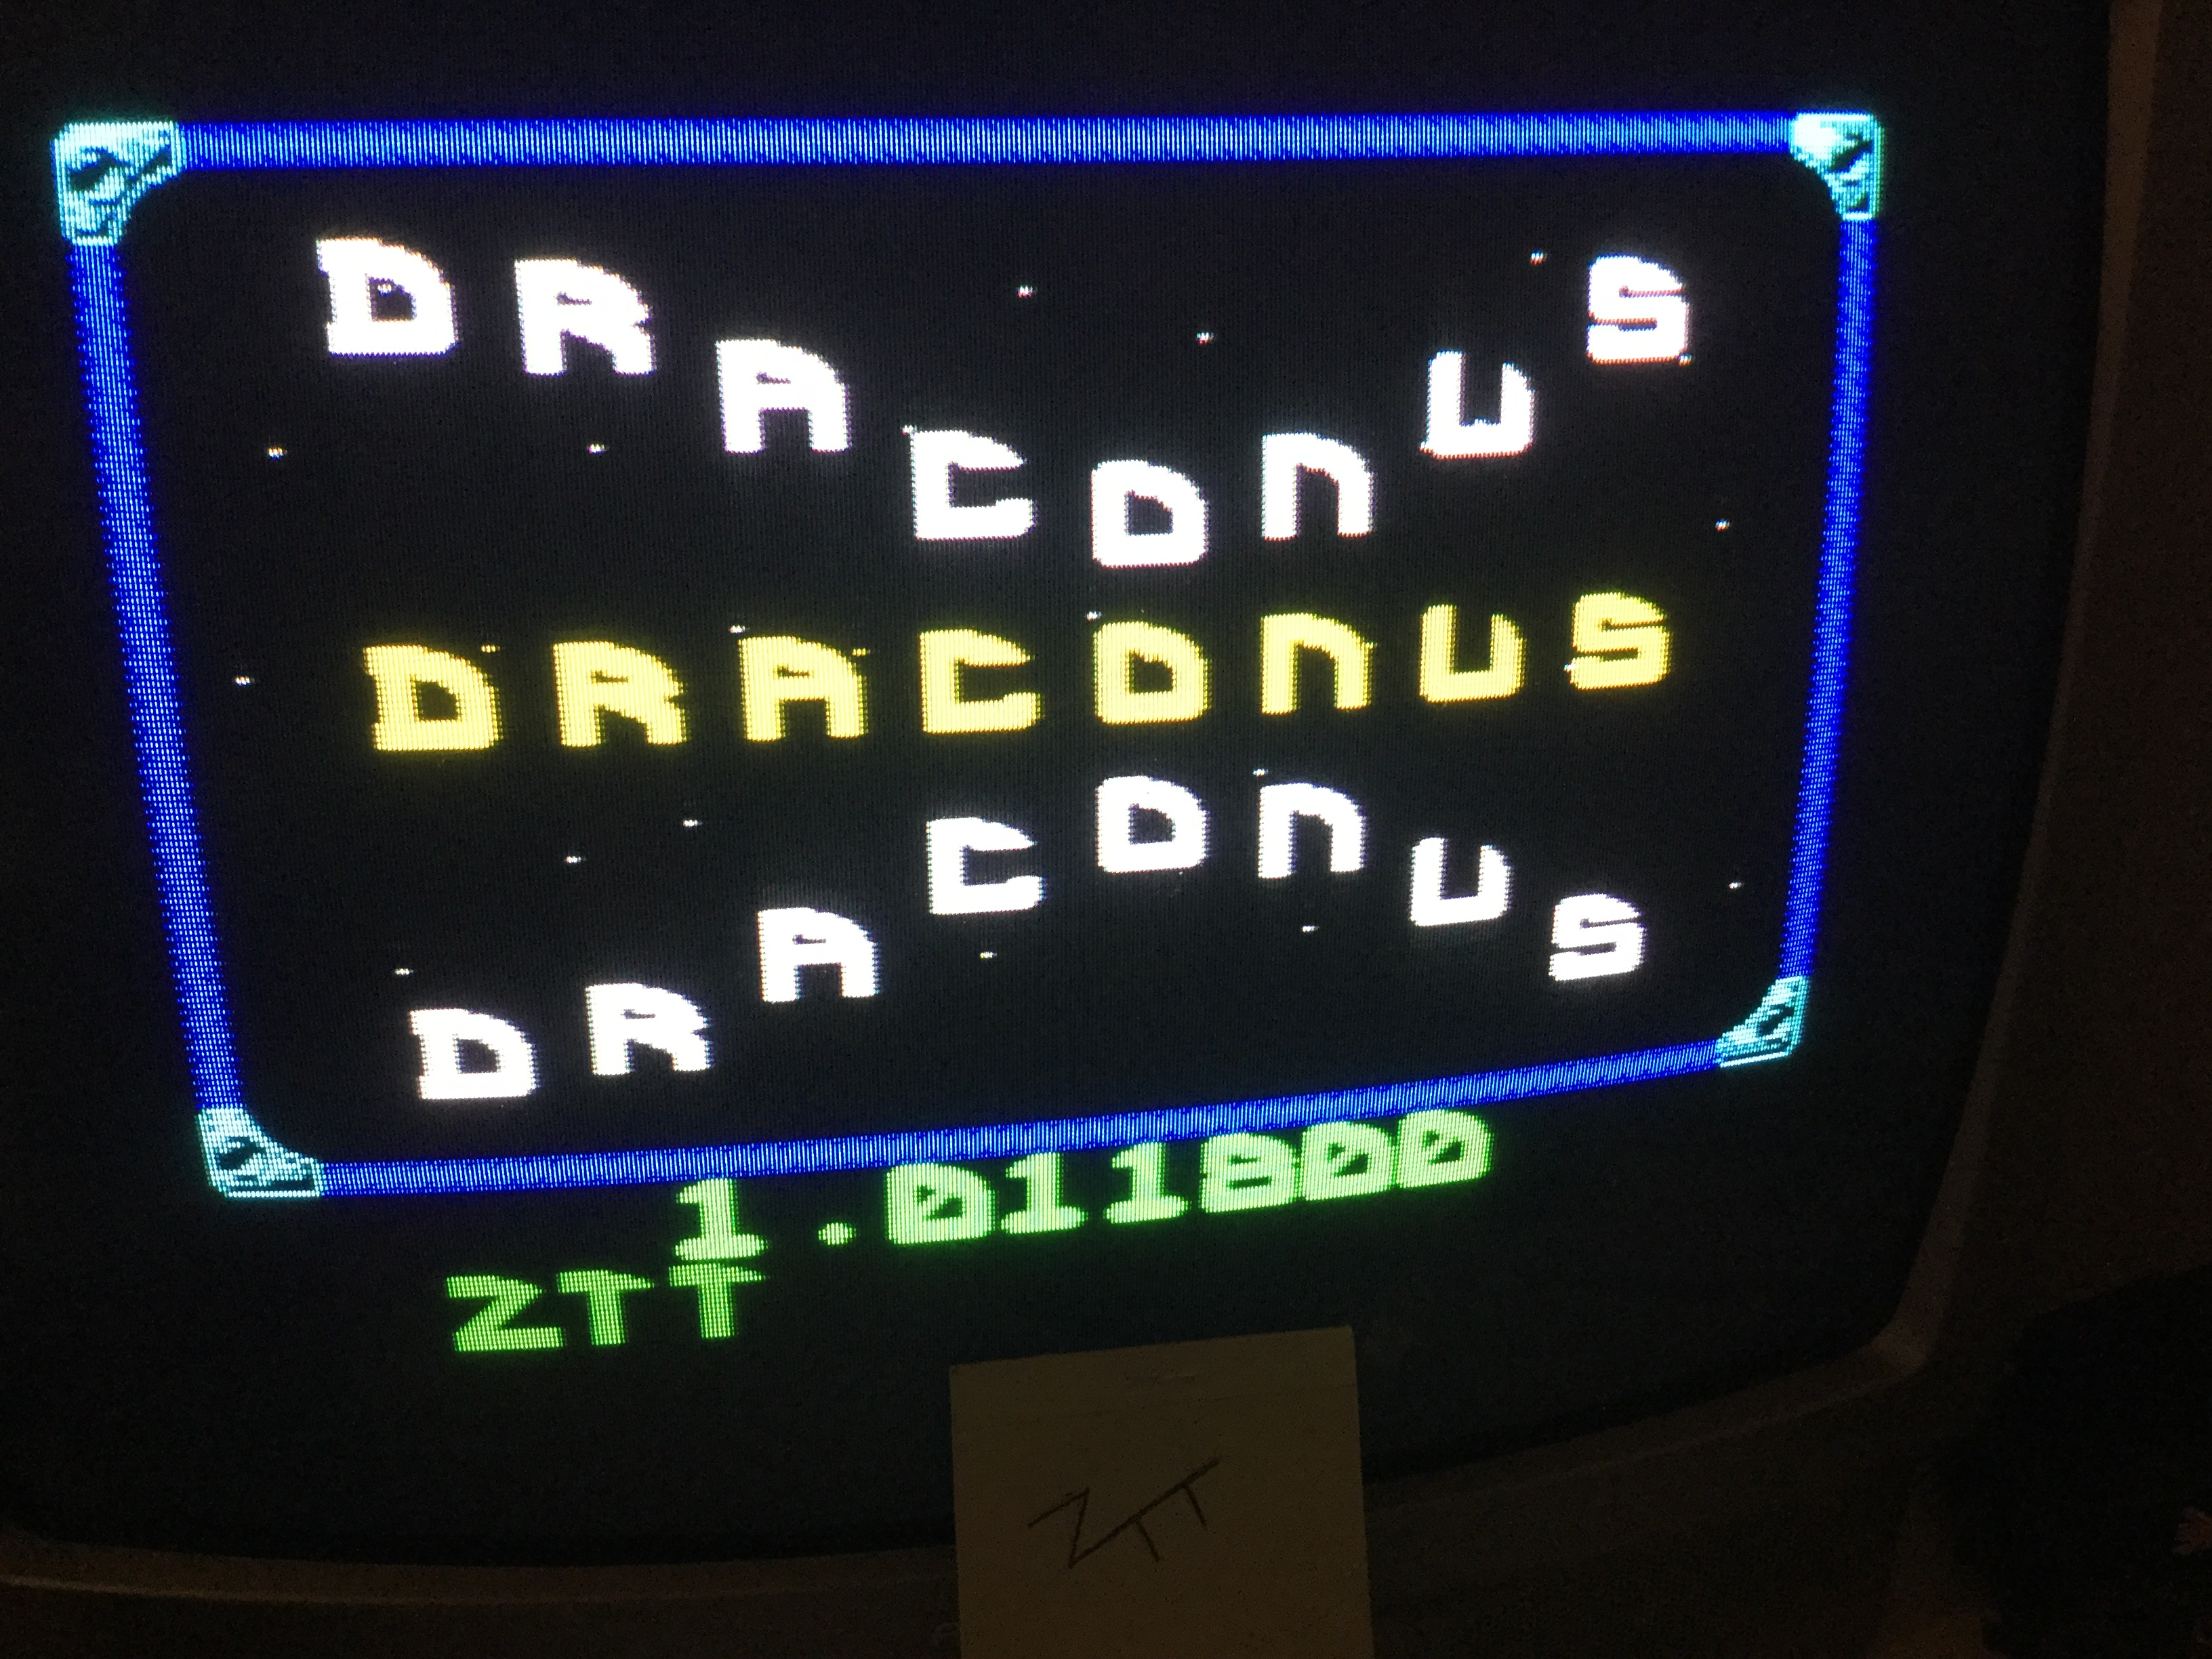 Draconus 11,800 points